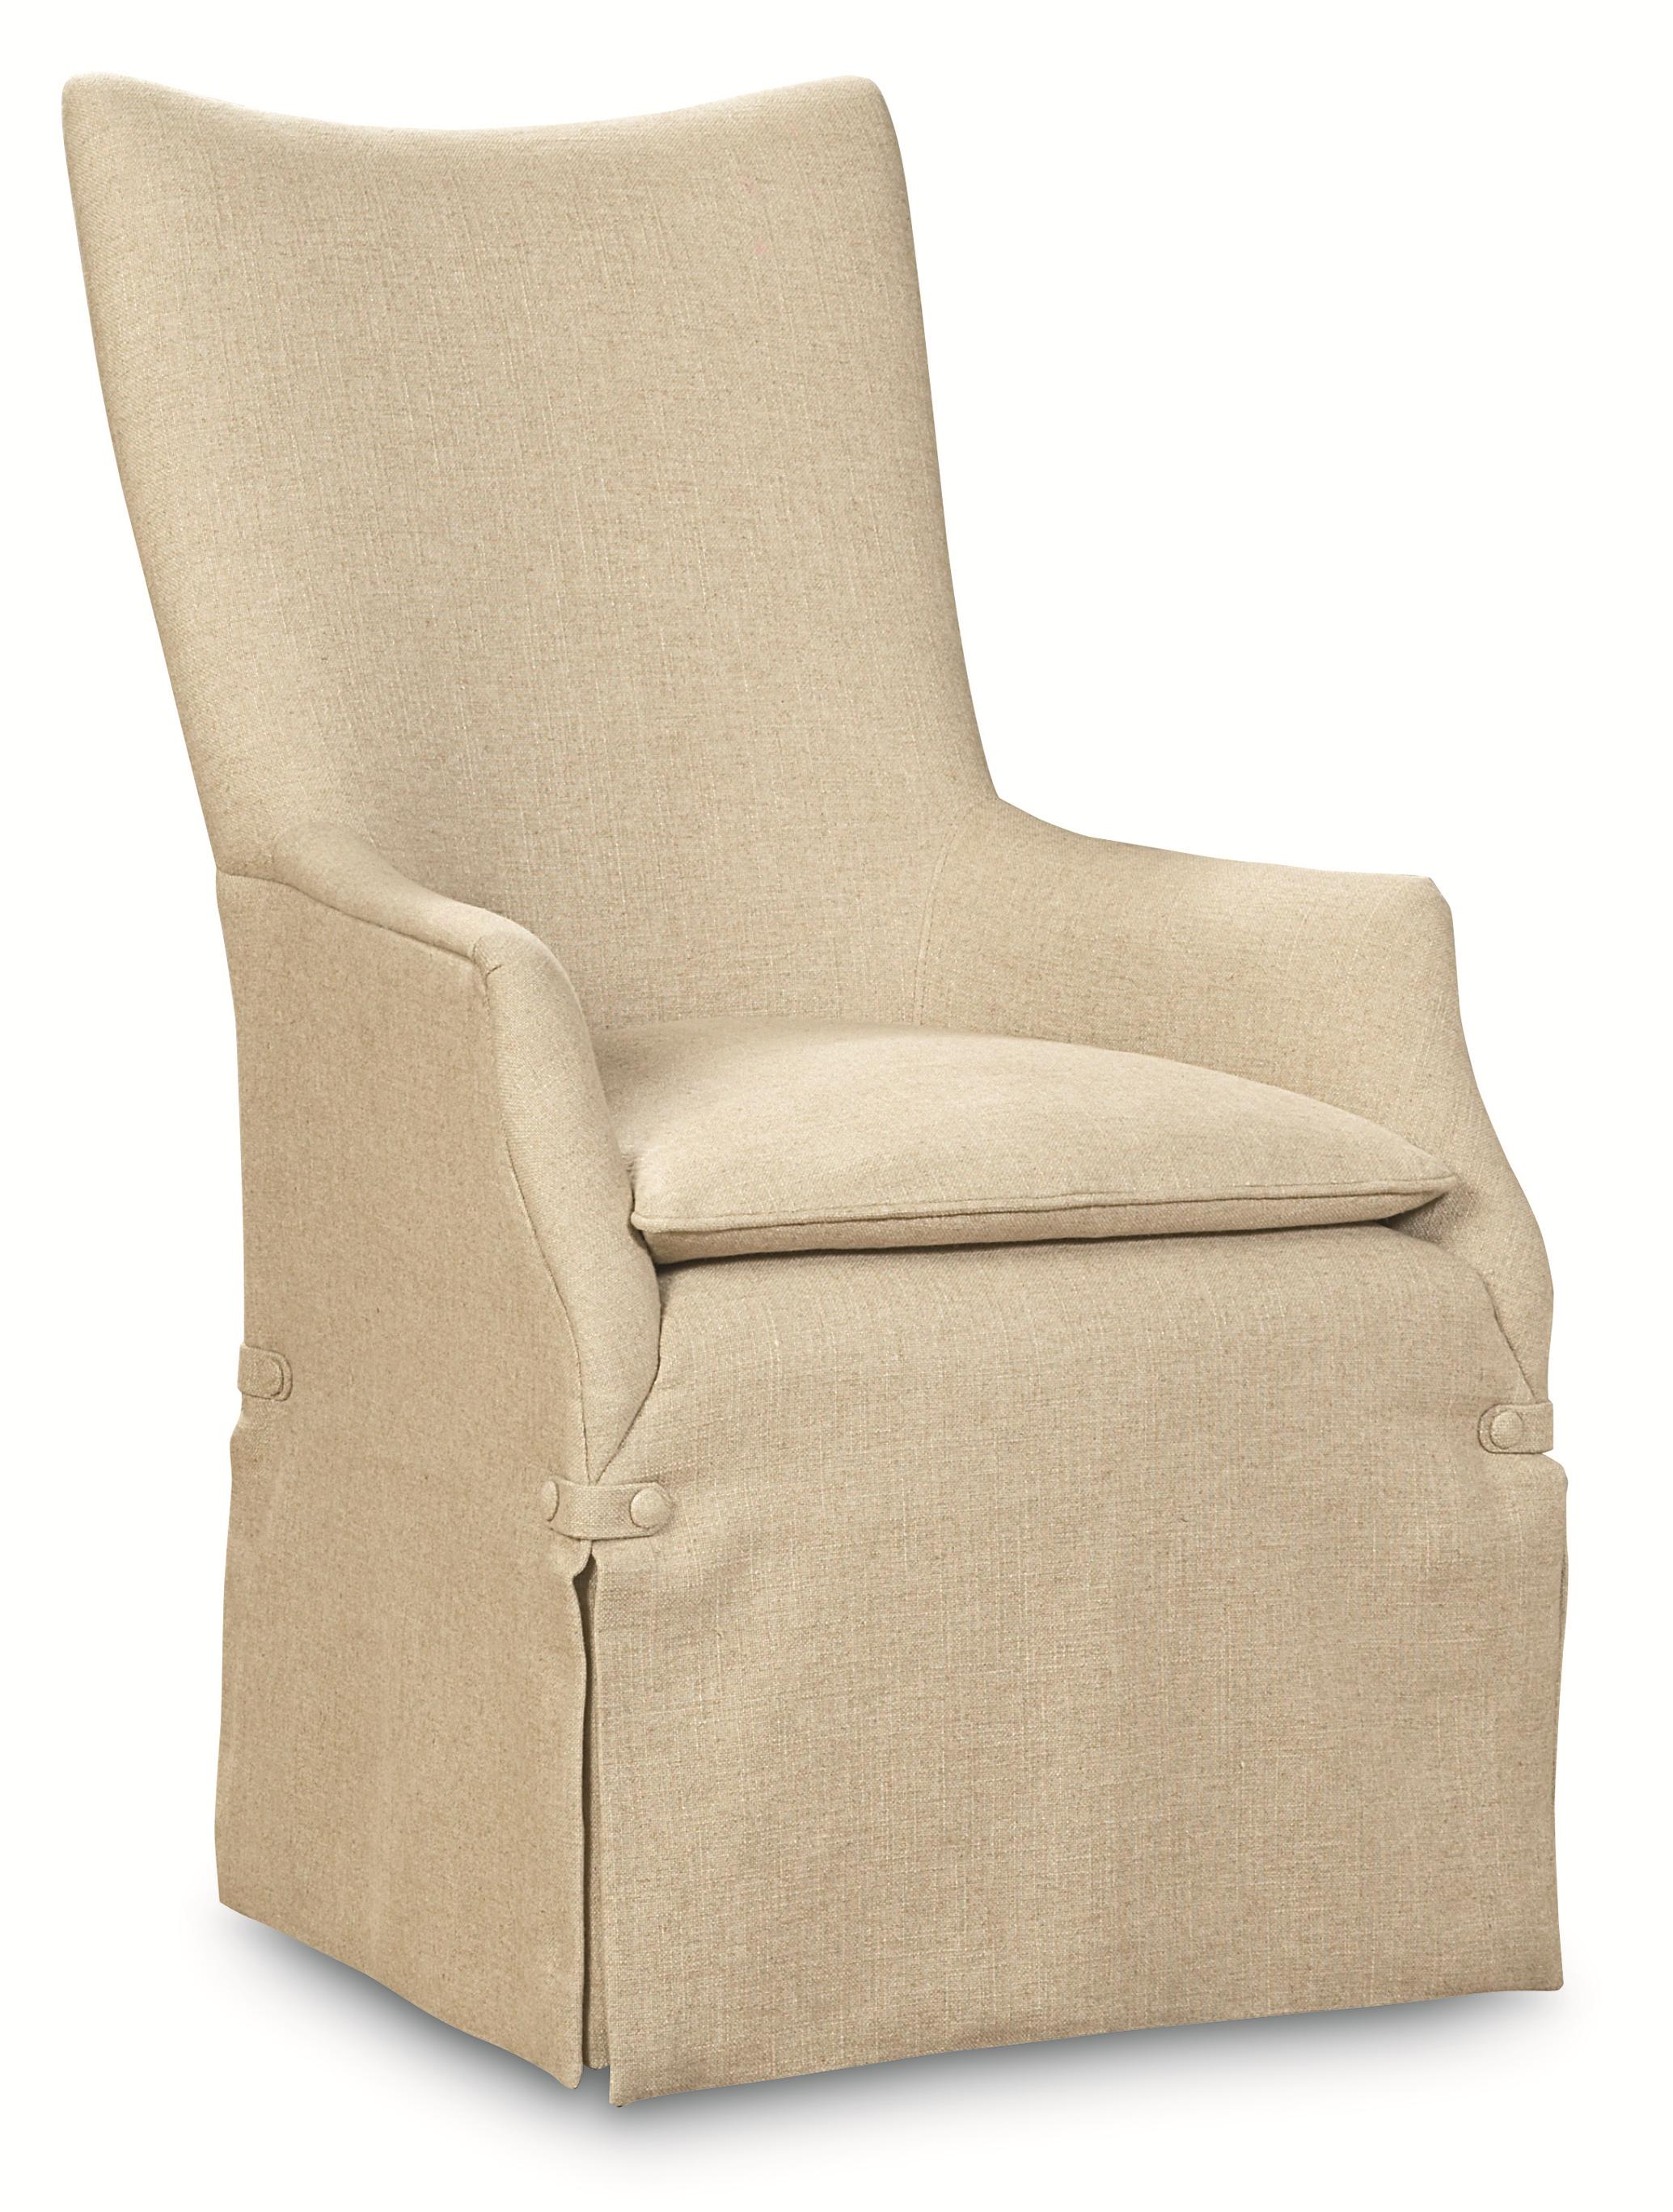 """Caracole Classic """"watch My Back"""" Upholstered Arm Chair by Caracole at Baer's Furniture"""